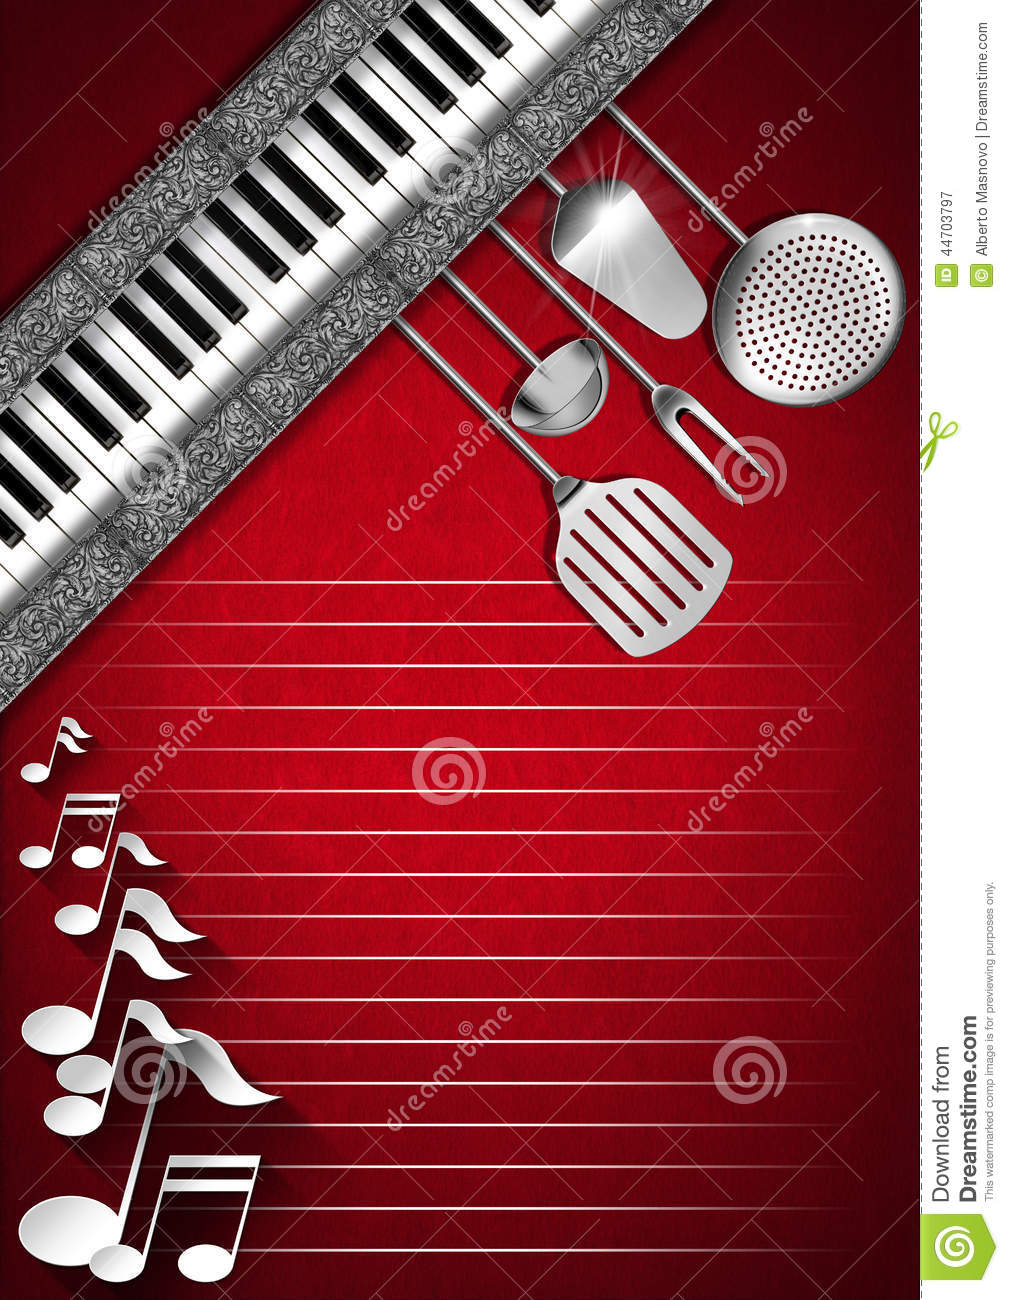 Music And Food Menu Design Stock Illustration Image 44703797